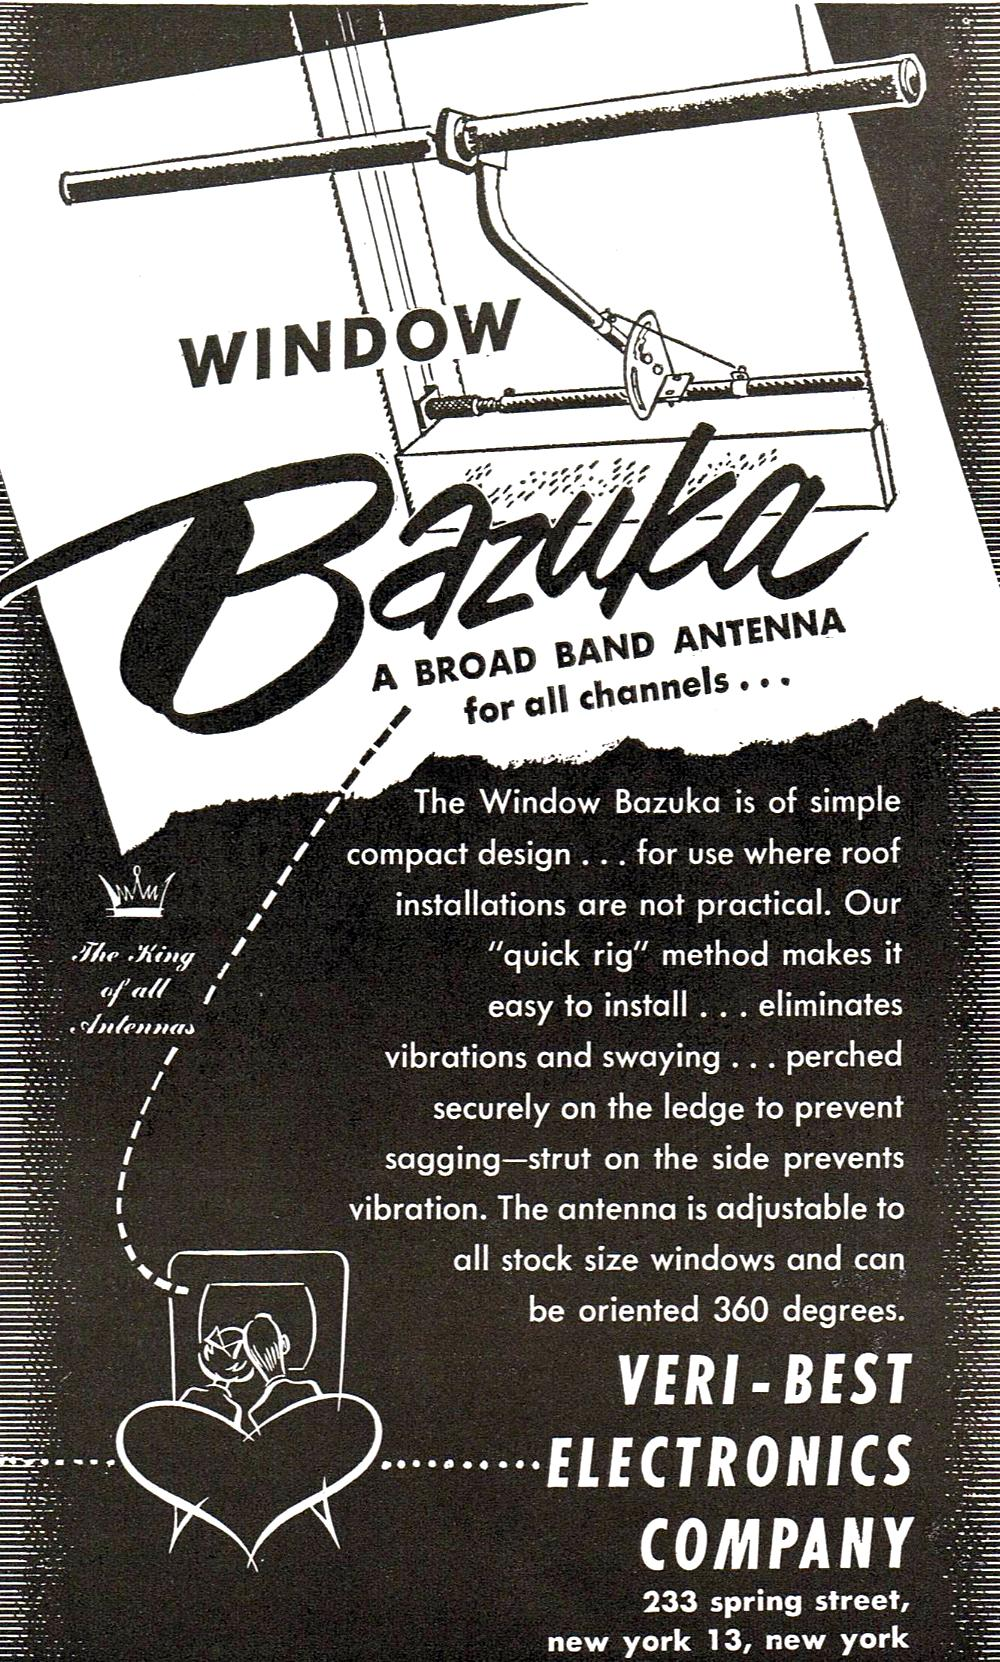 2261 Tv Antenna Booster Circuit Diagram On Amplifier Wiring Advertisement For Veri Best Electronics Company Window Bazuka Television